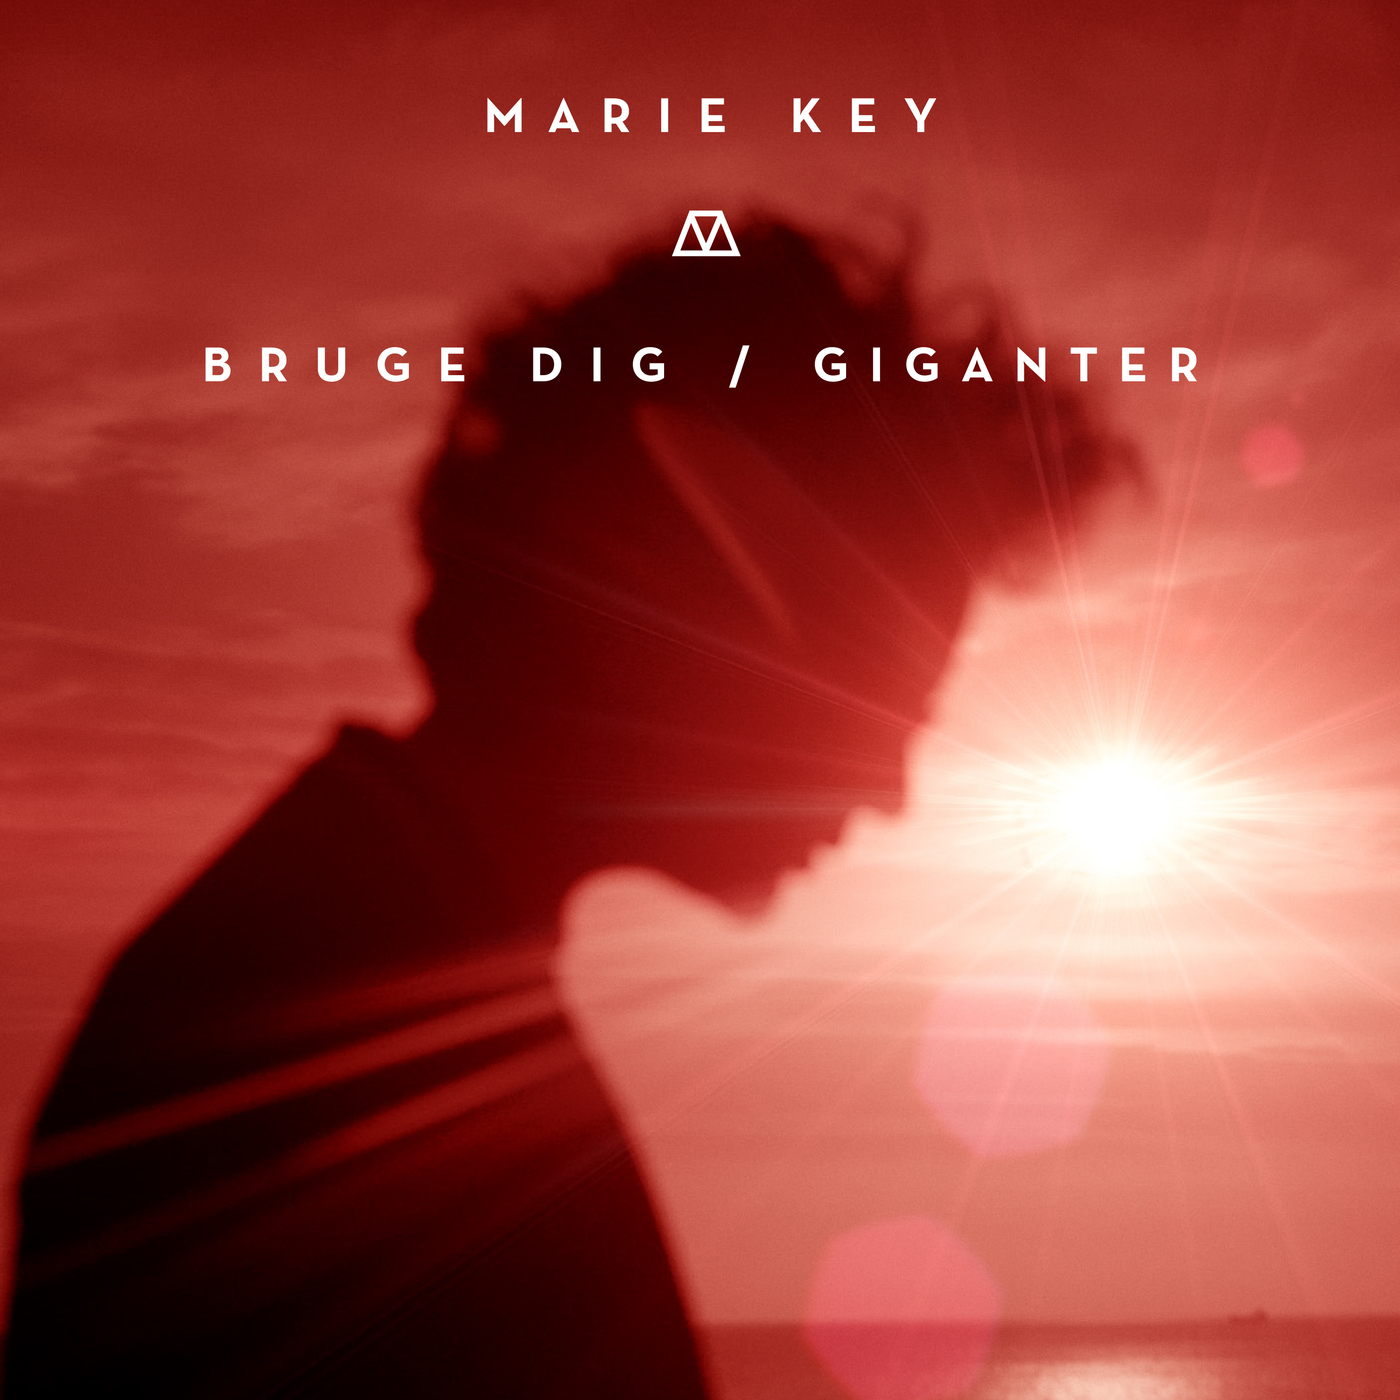 シングル/Giganter/Marie Key